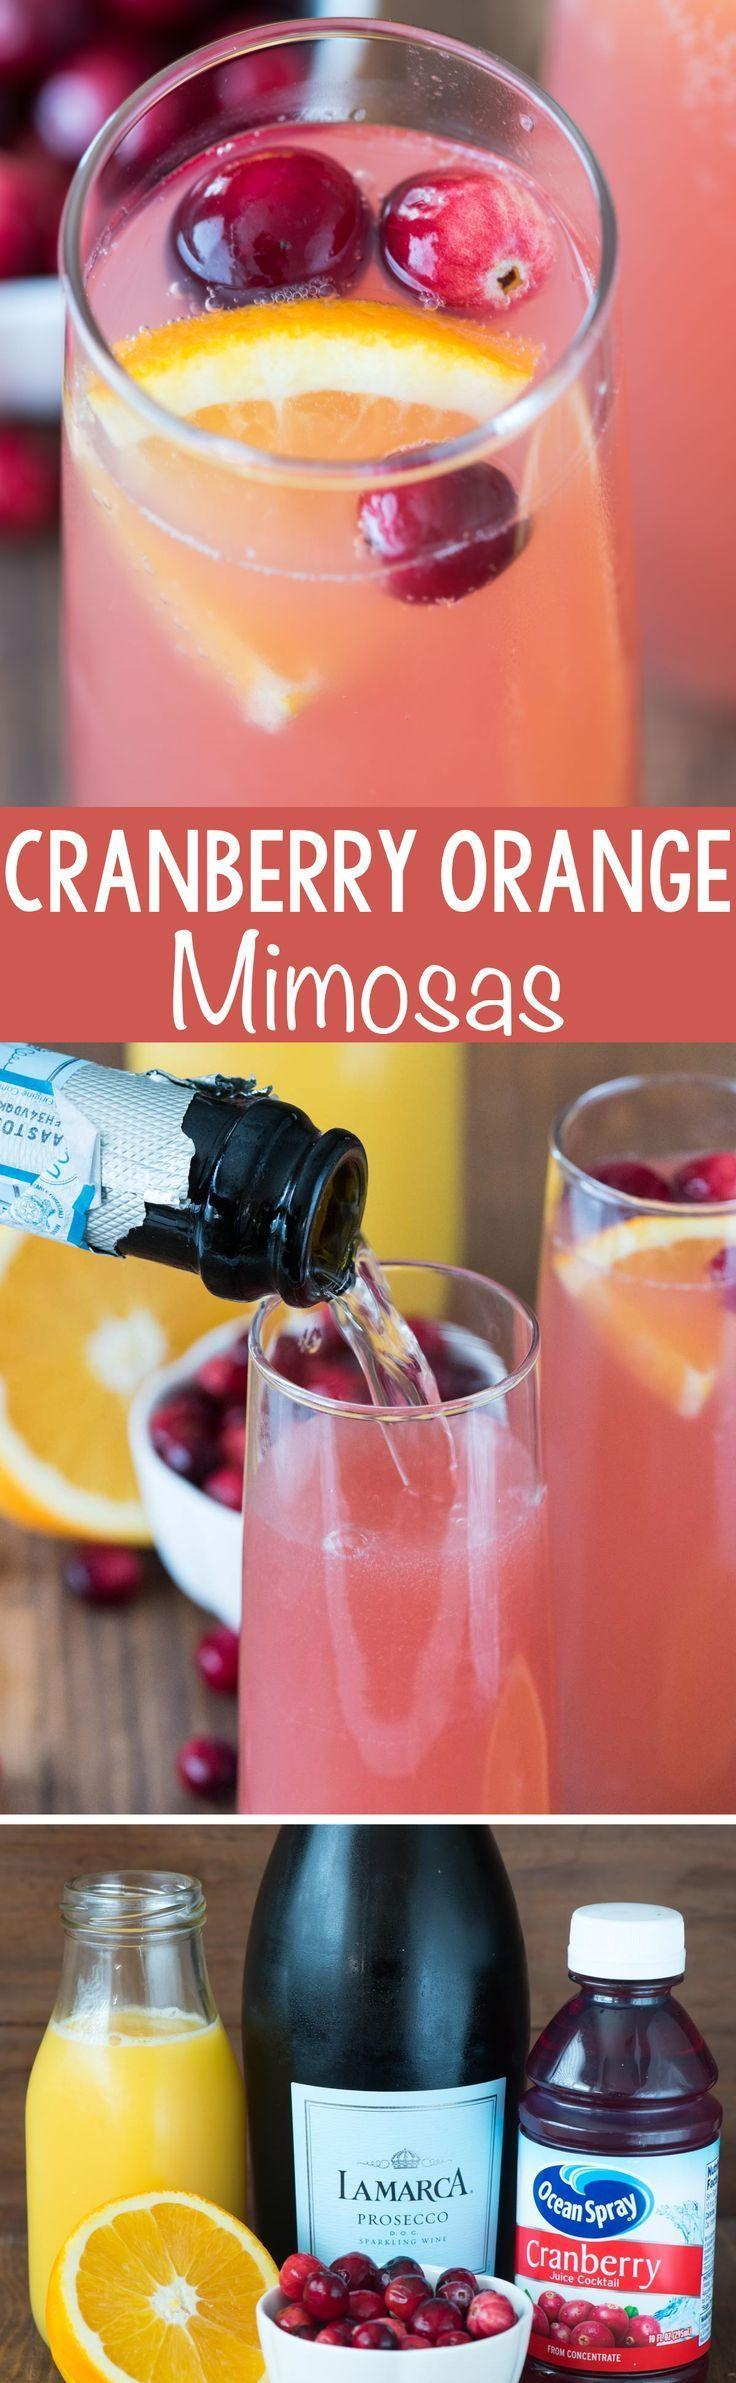 Düğün - Cranberry Orange Mimosa Bellini